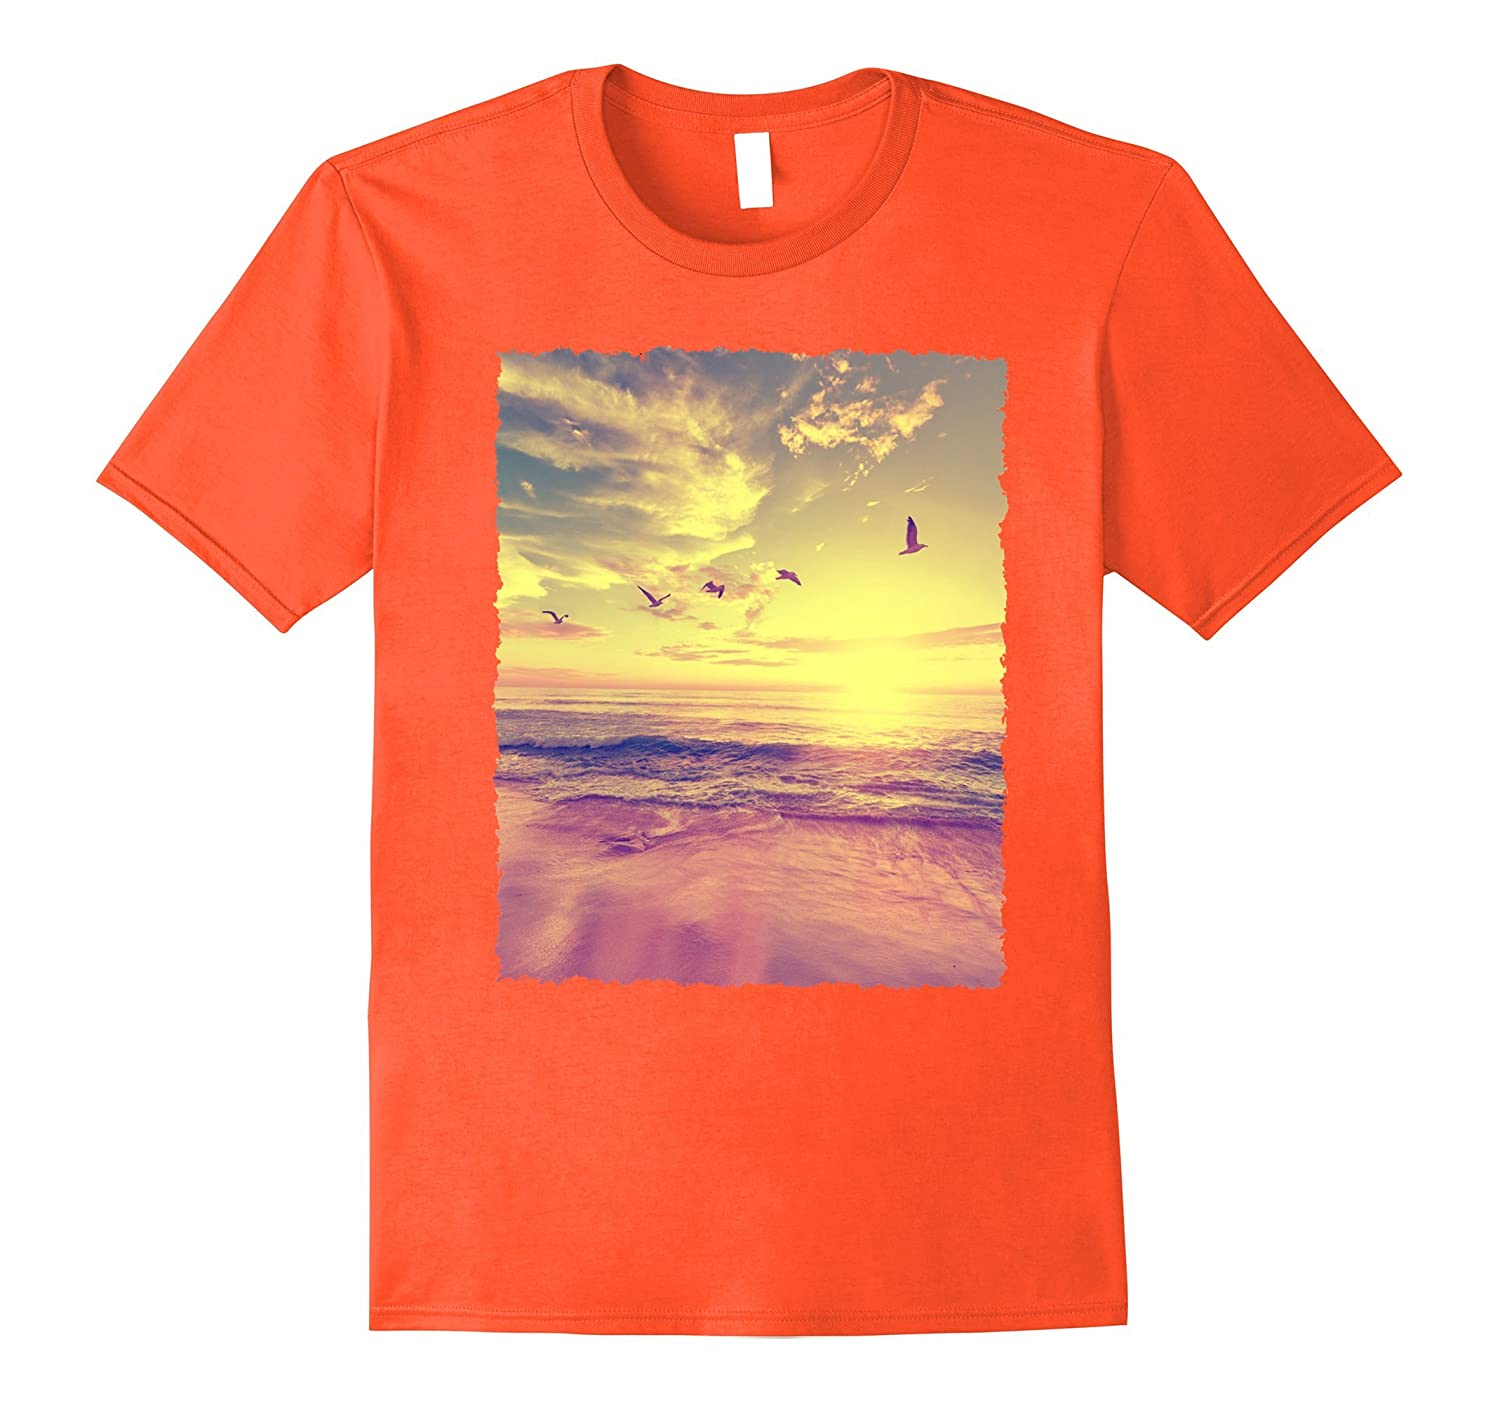 Beach Tee Mens  Ladies Summer Orange Graphic T-Shirt-Vaci